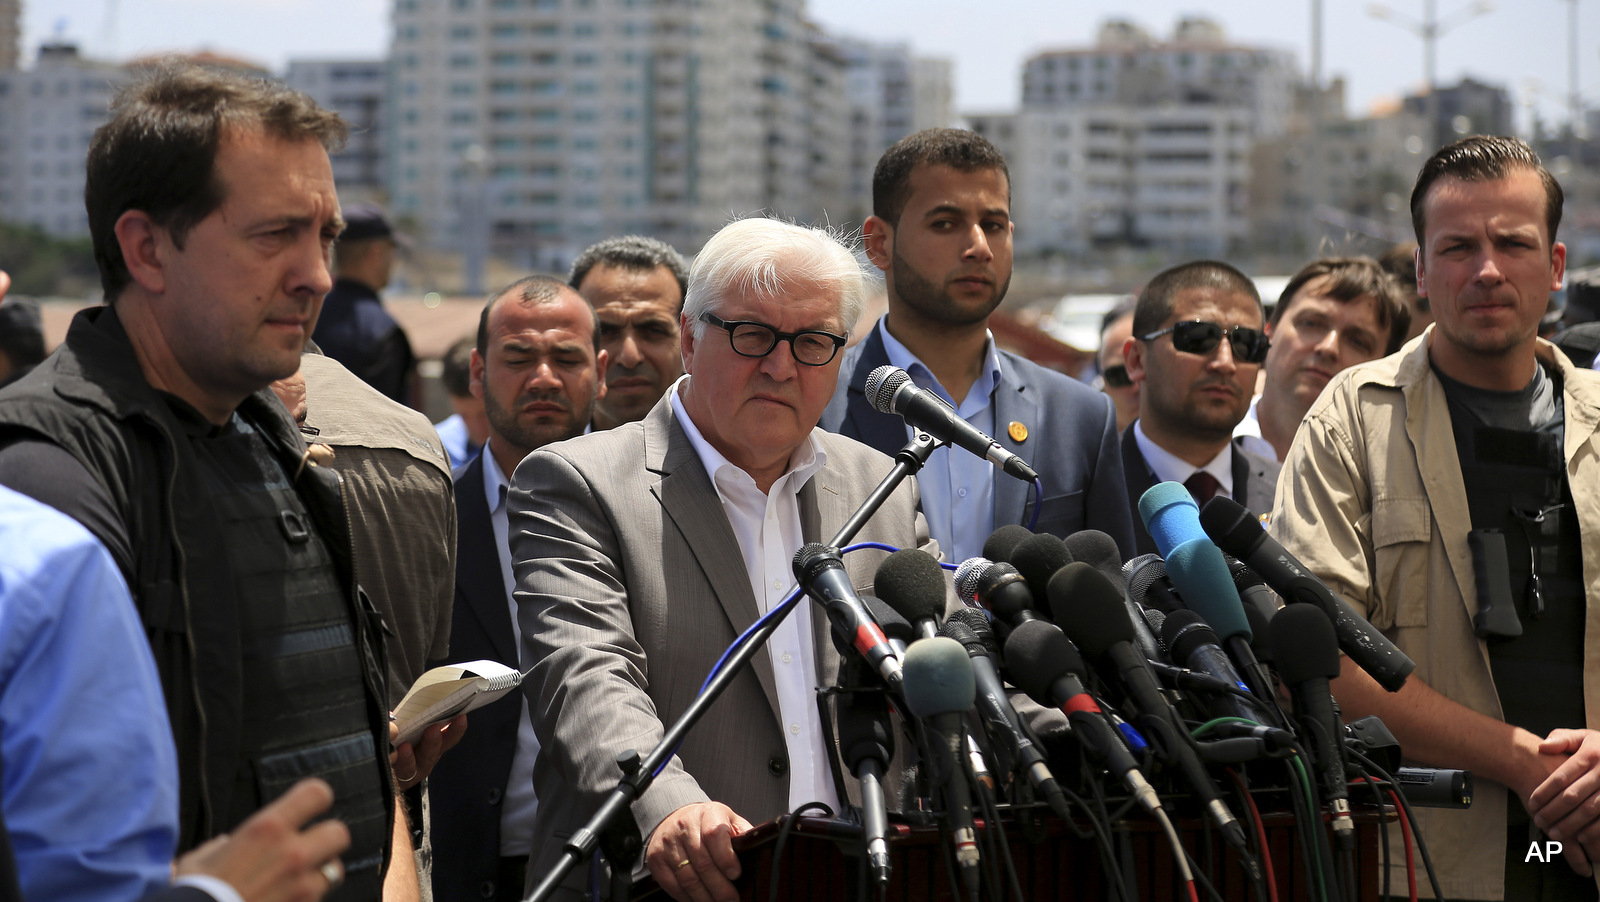 From Germany, With Hypocrisy: Foreign Minister Frank-Walter Steinmeier visits the Gaza Strip